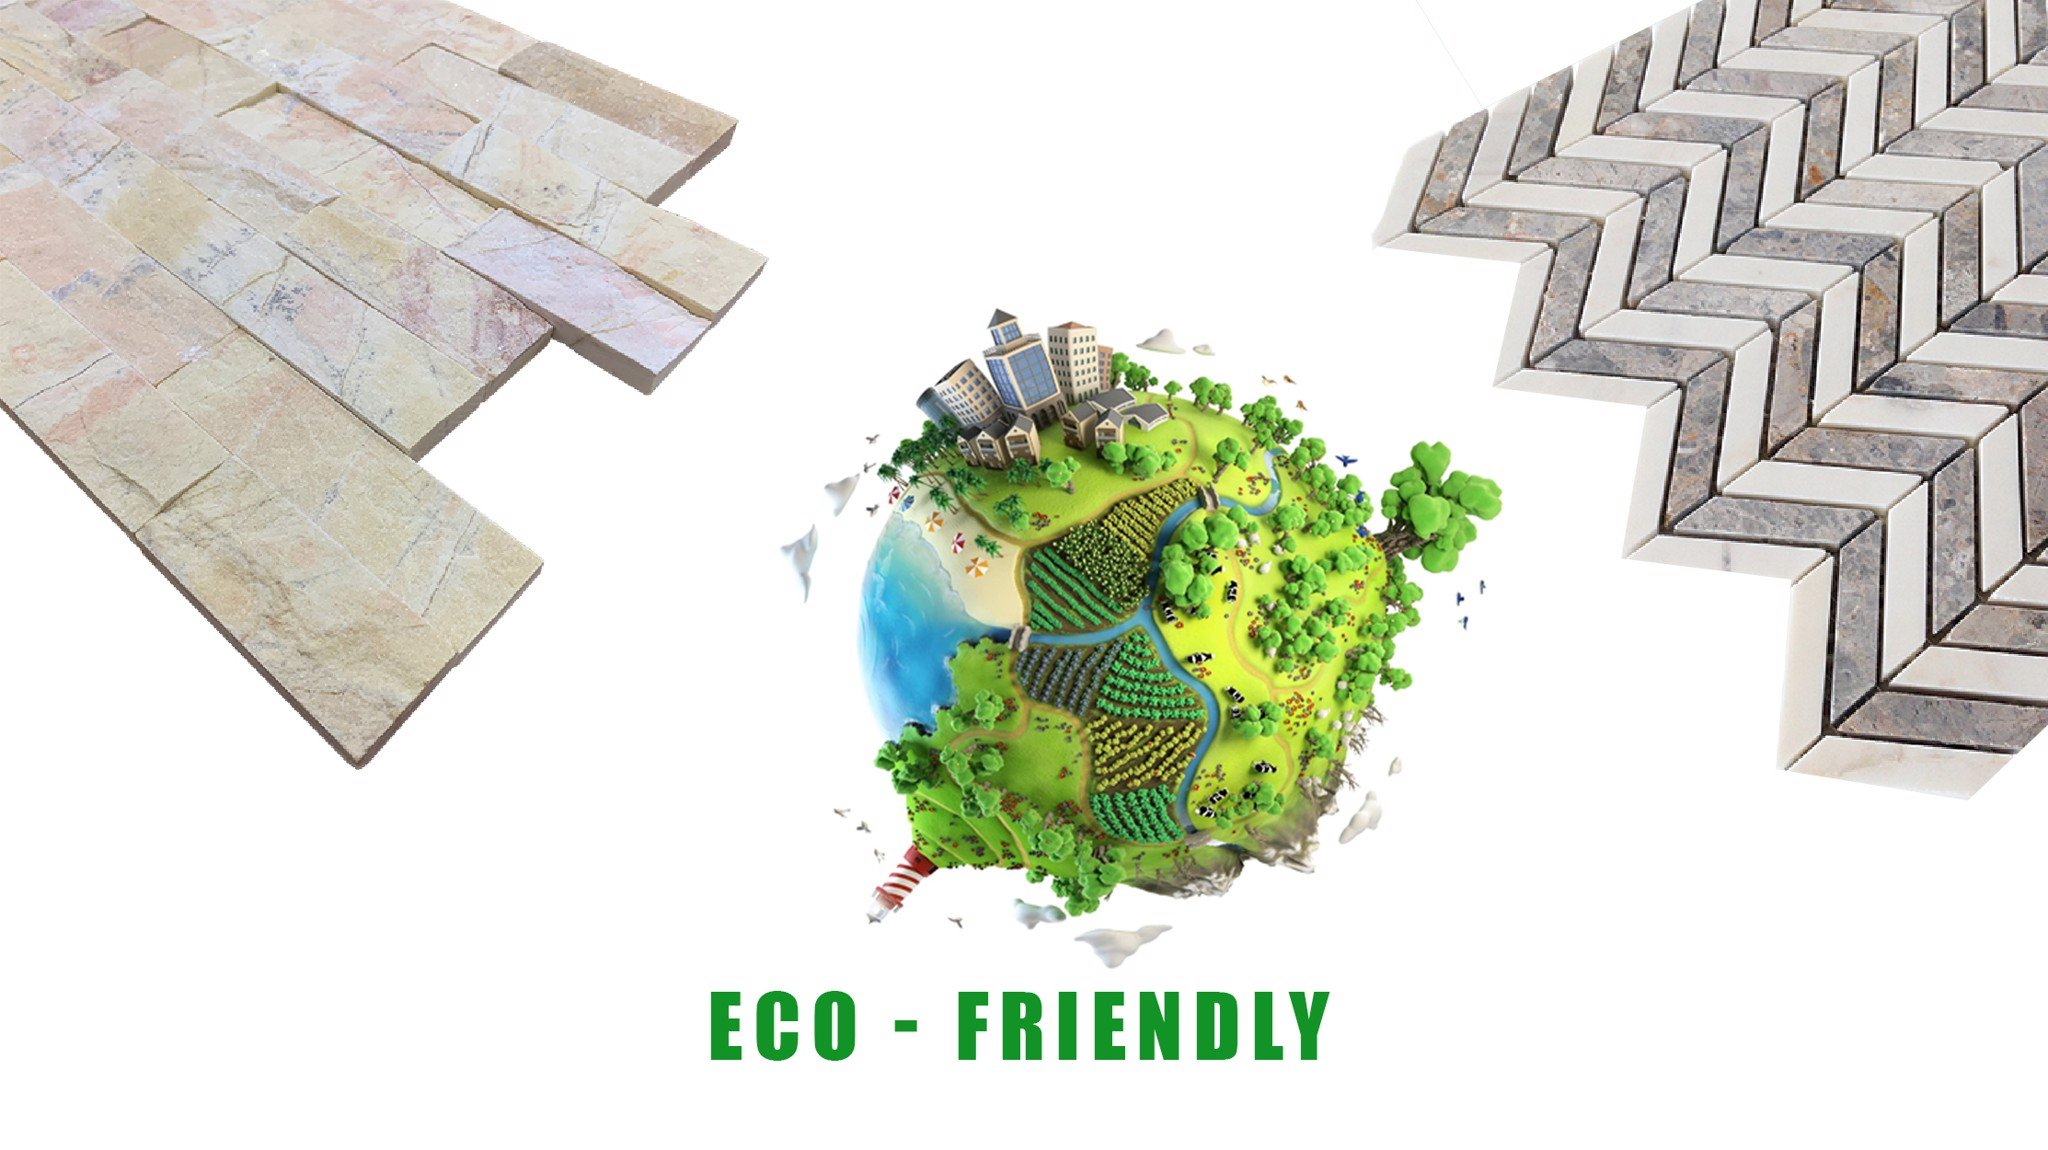 Using Viet Home Stone Products - Using Eco Friendly Building Materials